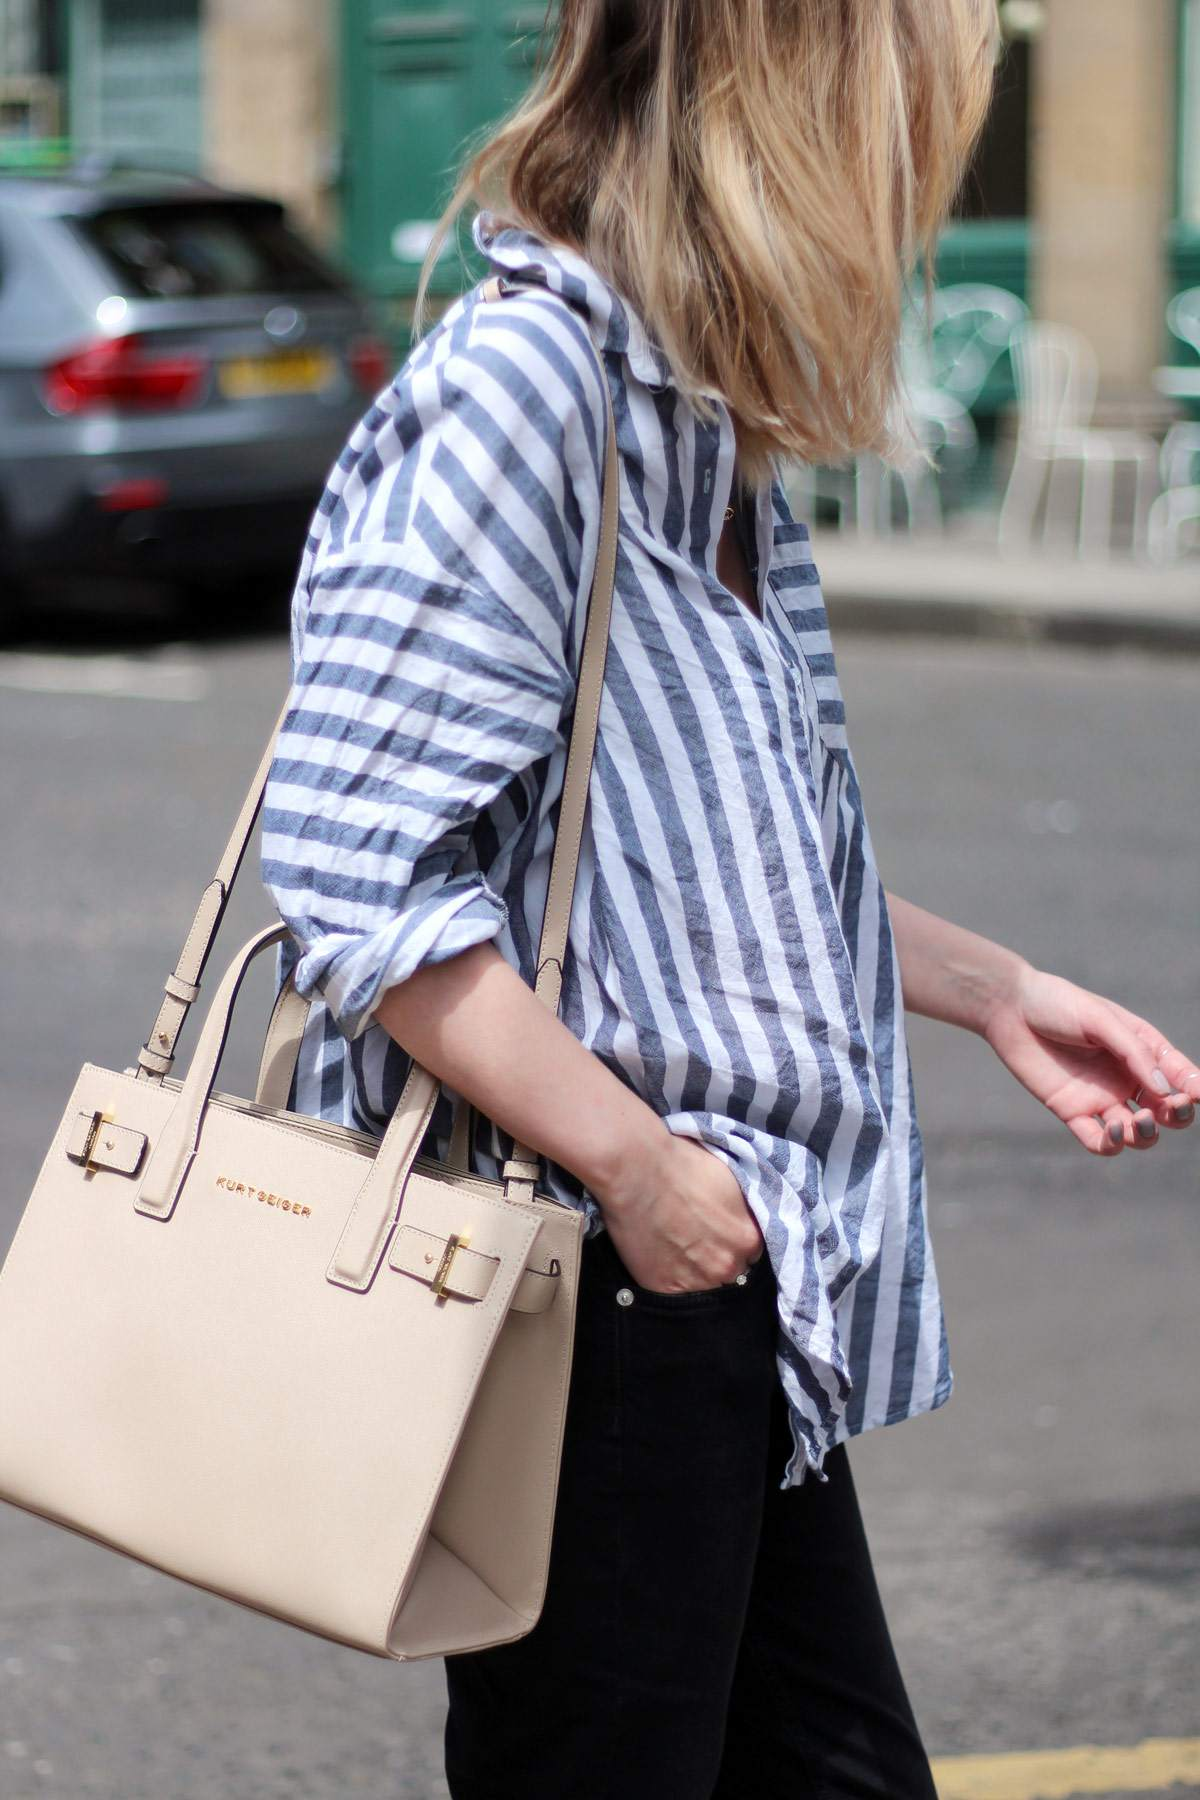 kurt-geiger-espadrille-wedge-heel-black-beige-bag-asos-stripe-shirt-celine-audrey-sunglasses-12